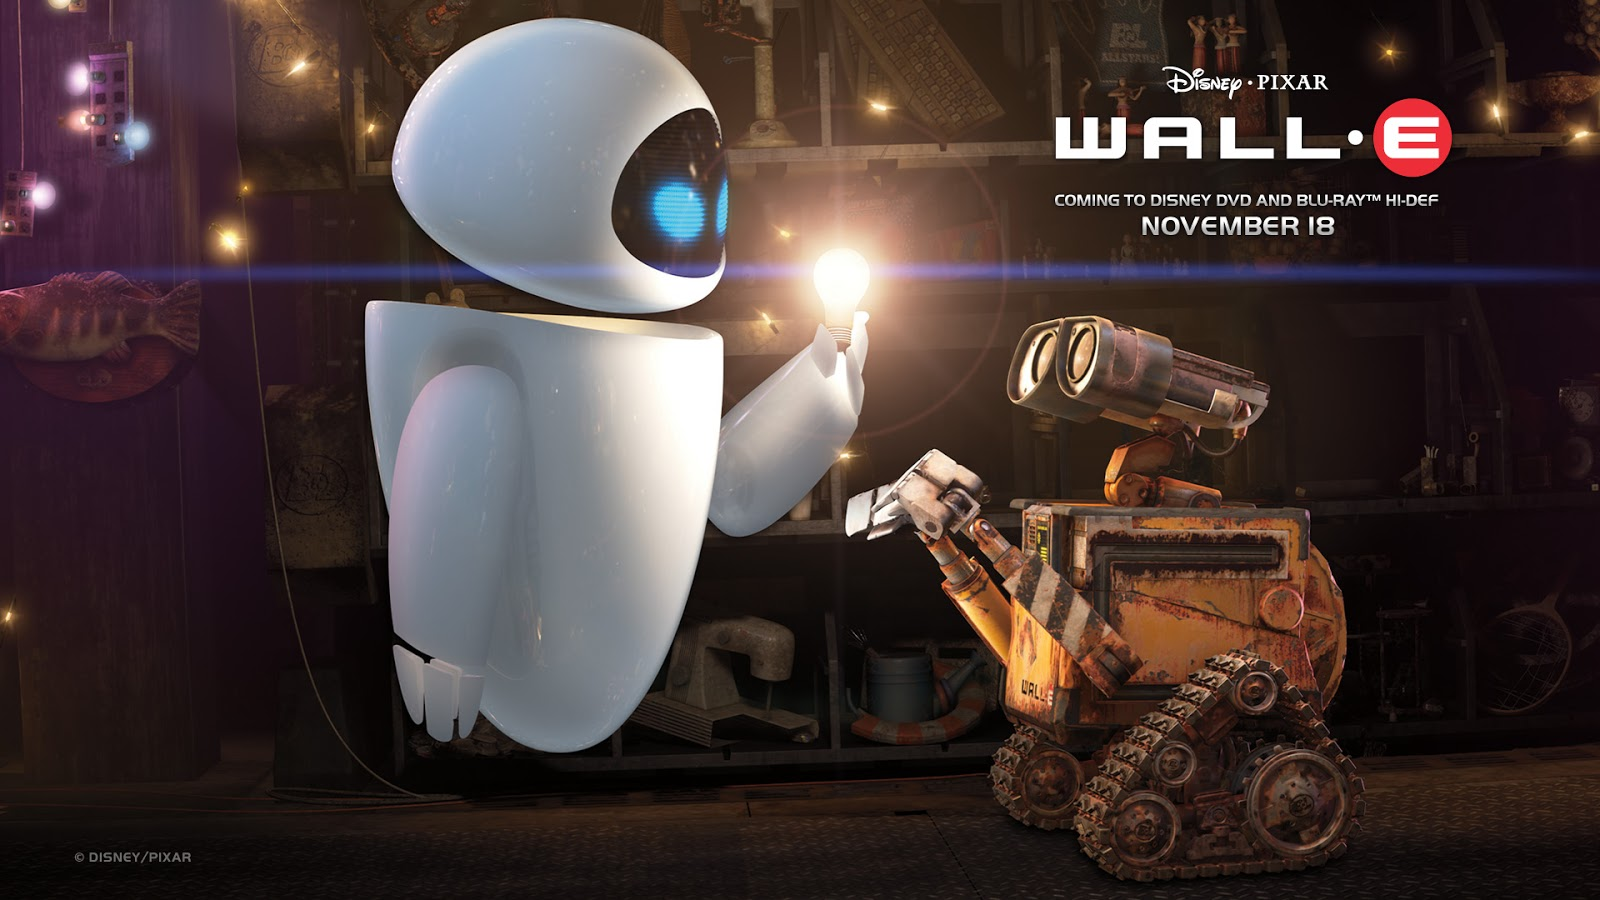 Wall e full movie free download ~ your online trusted partner.